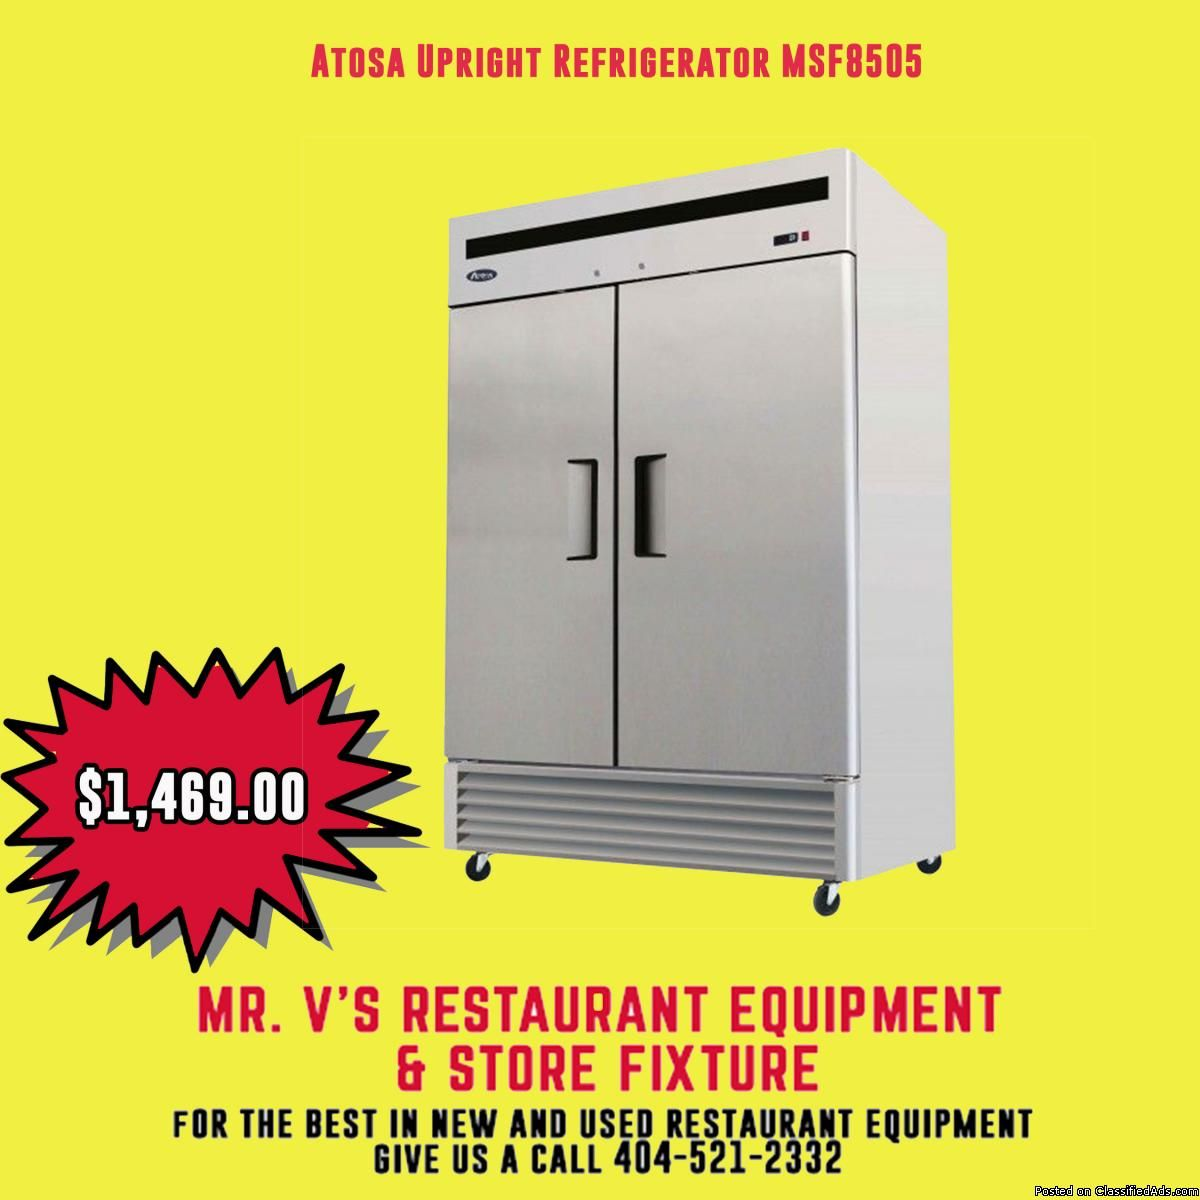 Limited Time Offer Atosa 3 Door Refrigerator Was 1900 Now Only 1469 The Best In New And Used R Used Restaurant Equipment Restaurant Equipment Upright Freezer